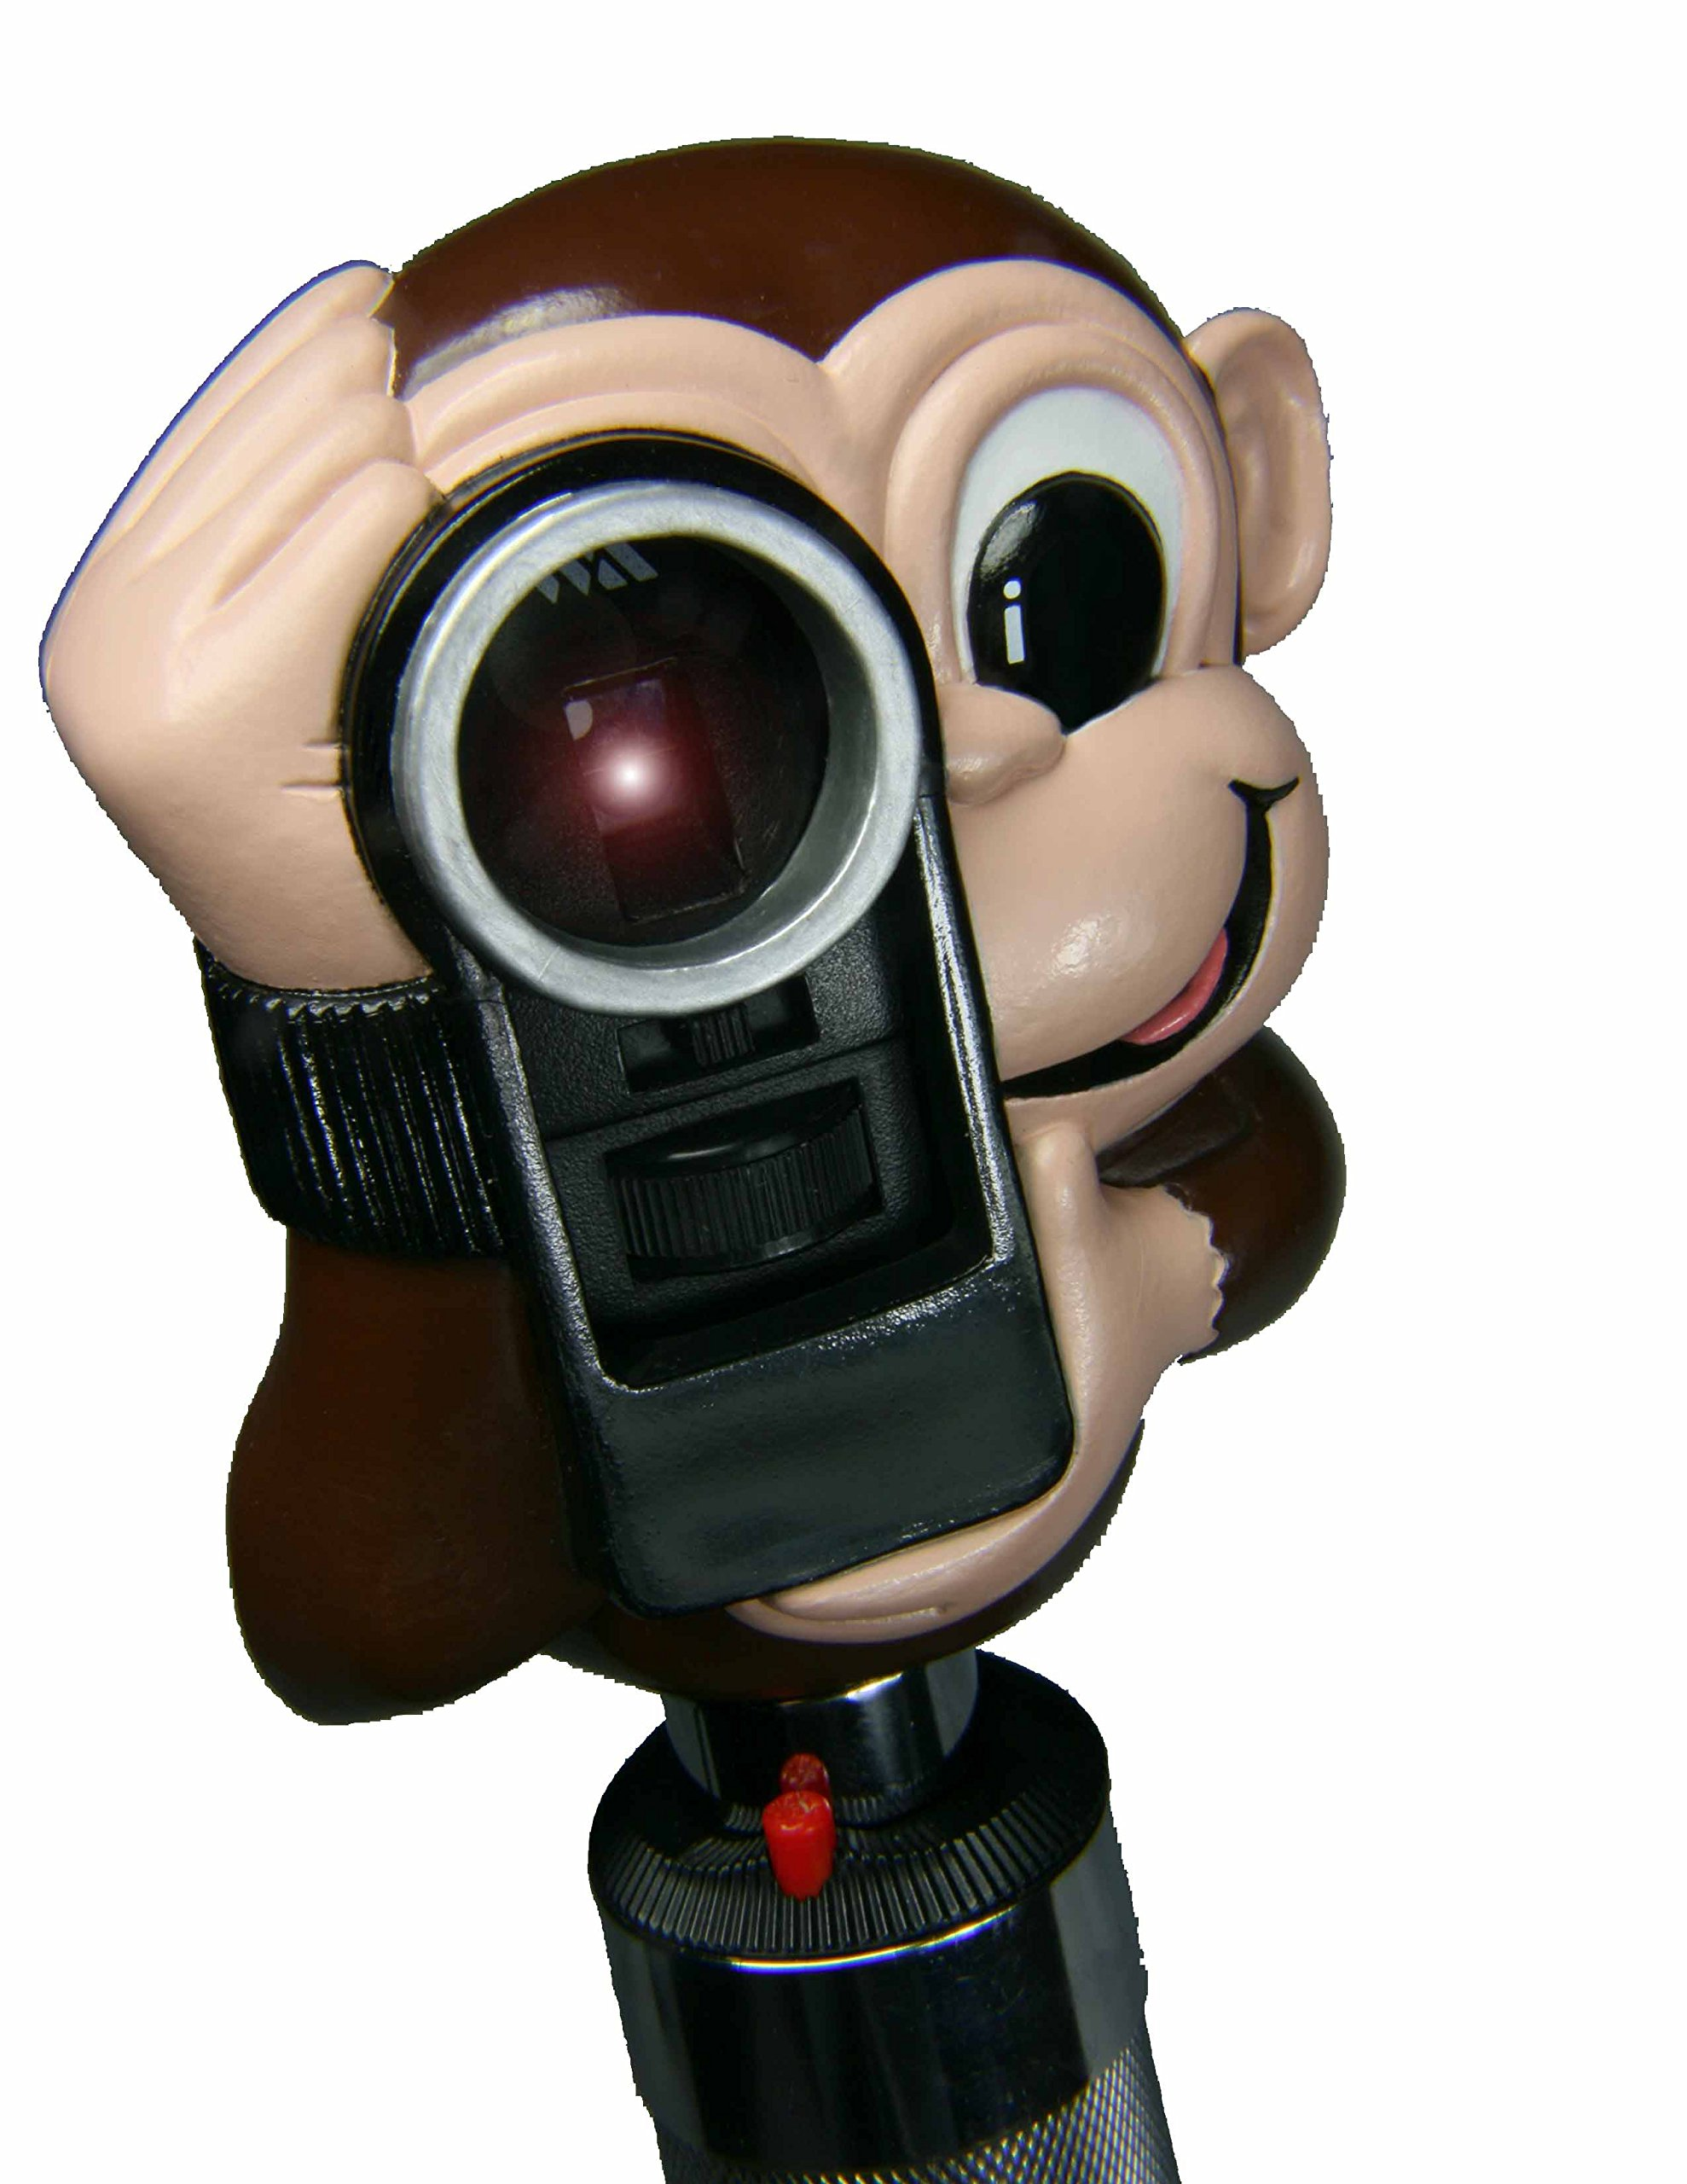 Exambuddies Ophthalmoscope Attachment for Welch Allyn Ophthalmoscopes, Monte The Monkey Accessory